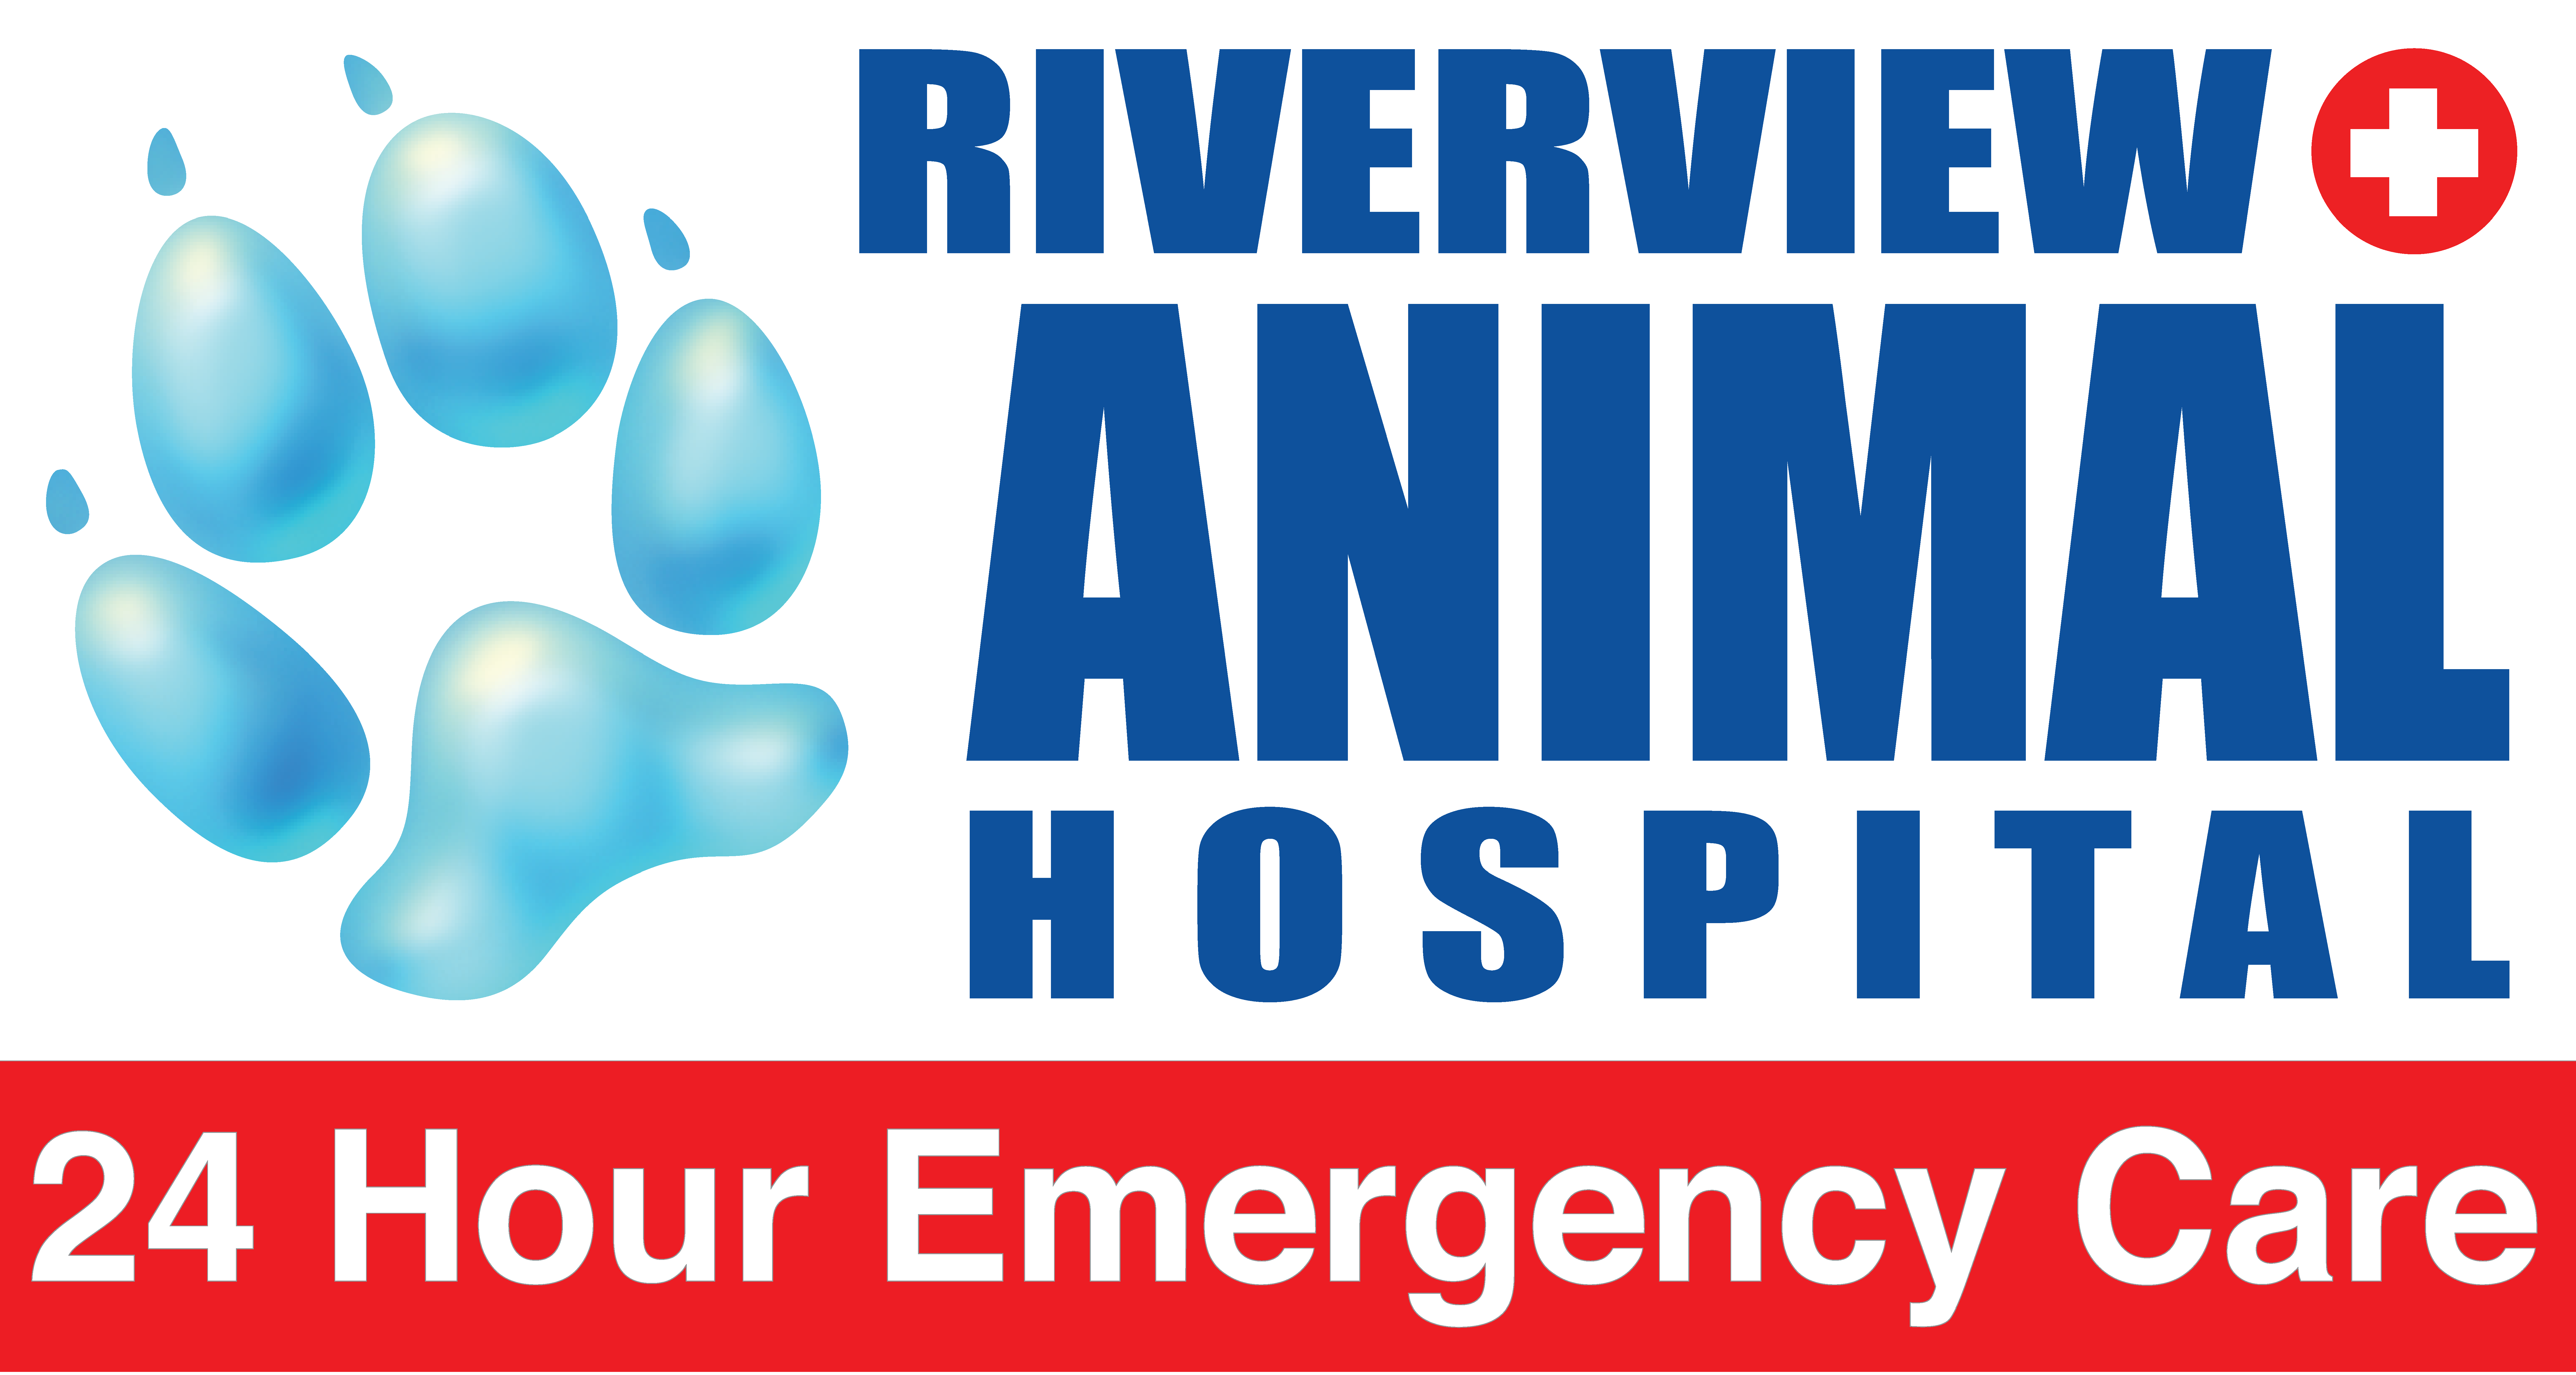 Career Opportunity - Riverview - Veterinary Technician